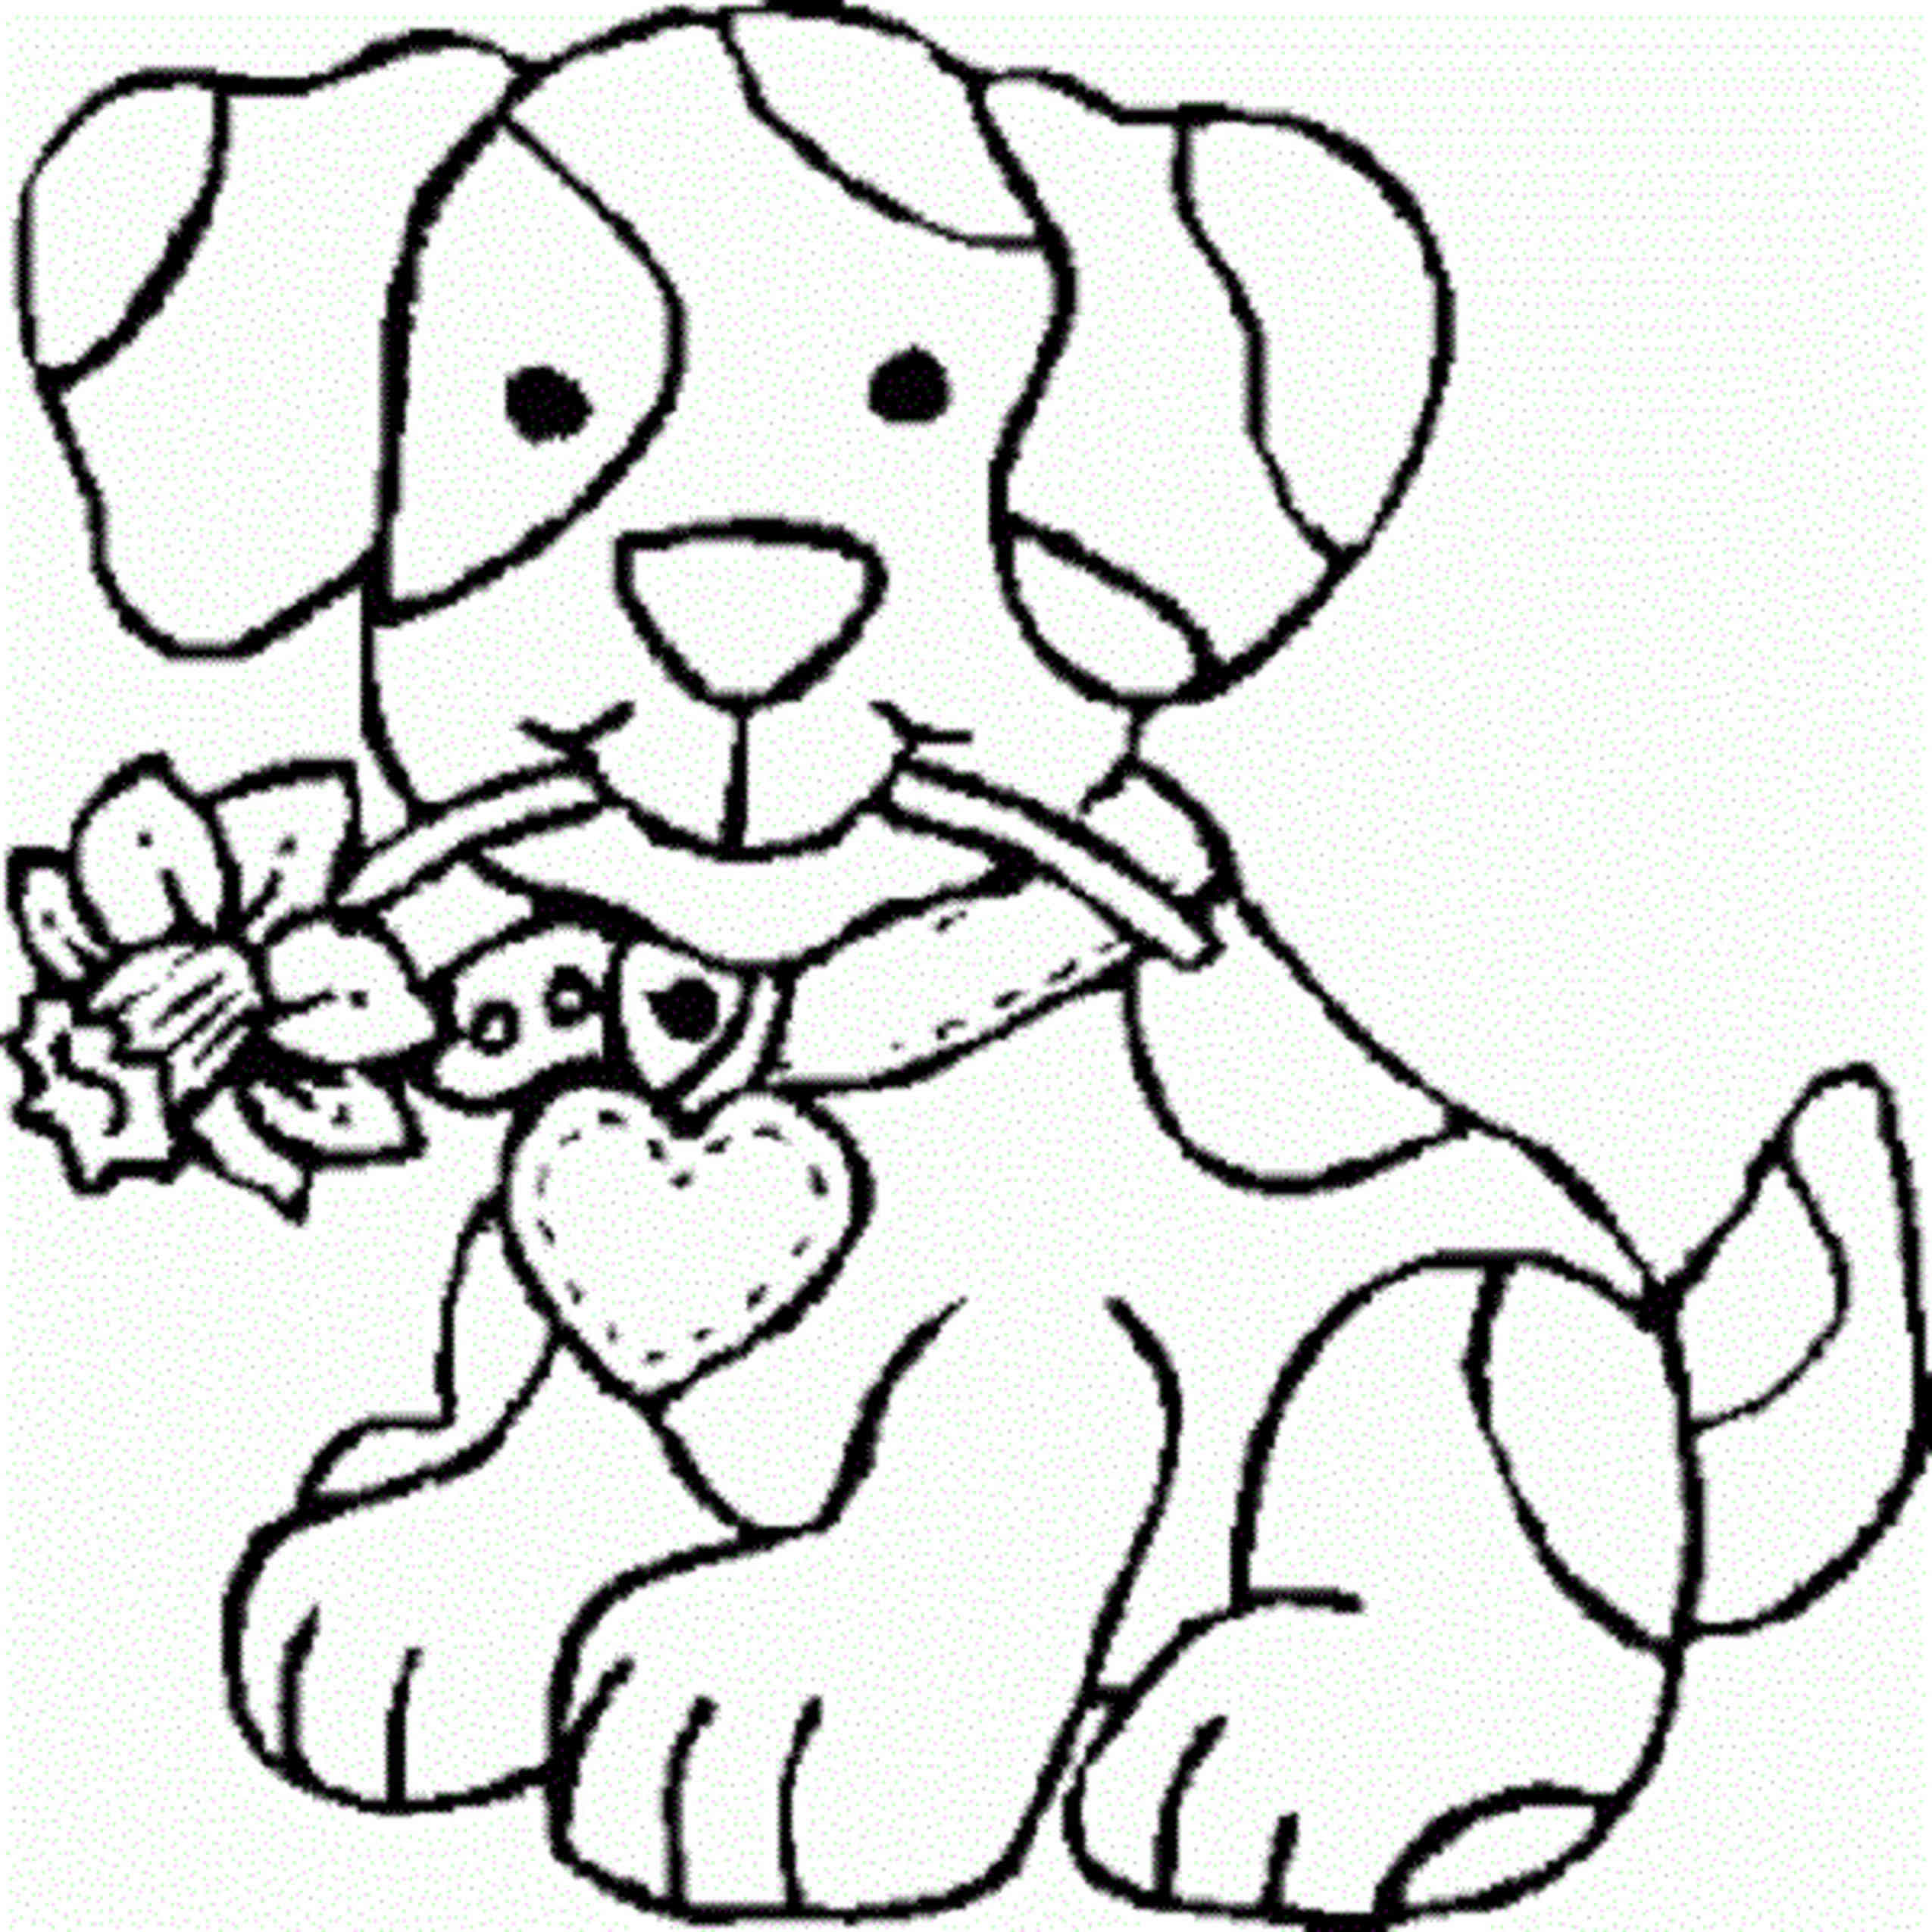 Coloring Pages For Teenage Girls Sun - Printable Kids Colouring ...